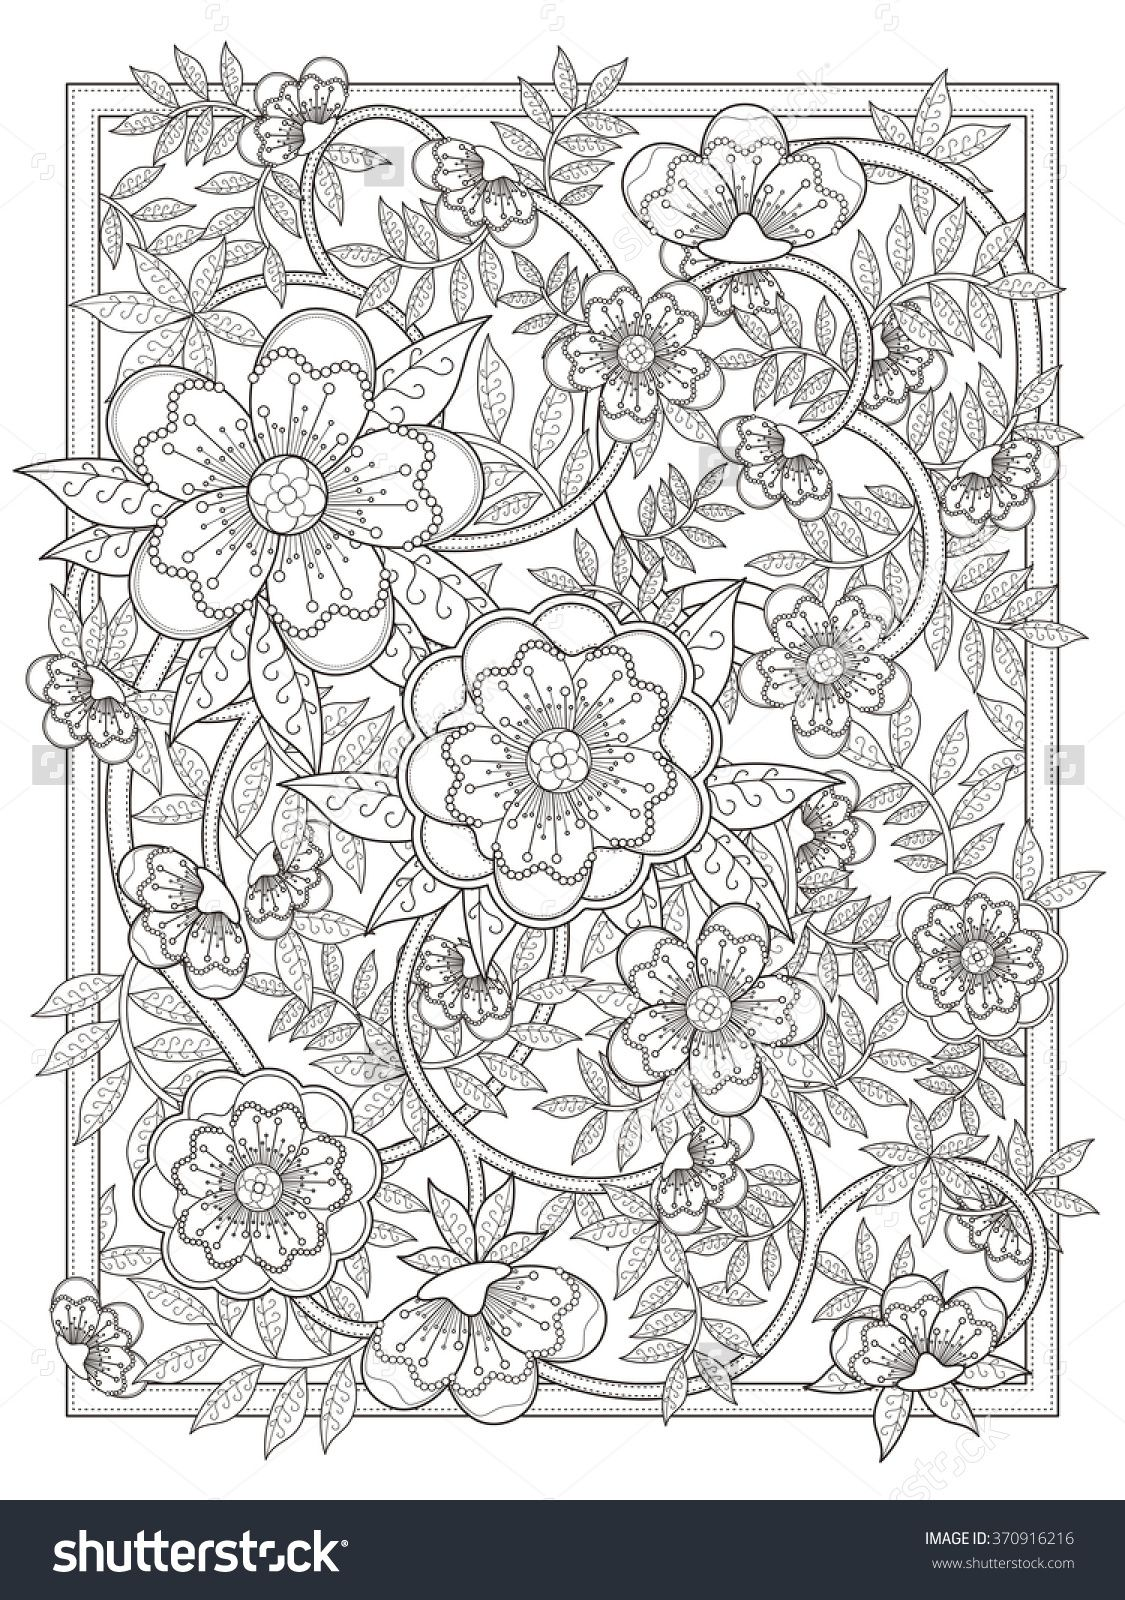 Retro And Elegant Floral Coloring Page In Exquisite Line Coloring Pages Coloring Books Mandala Coloring Pages